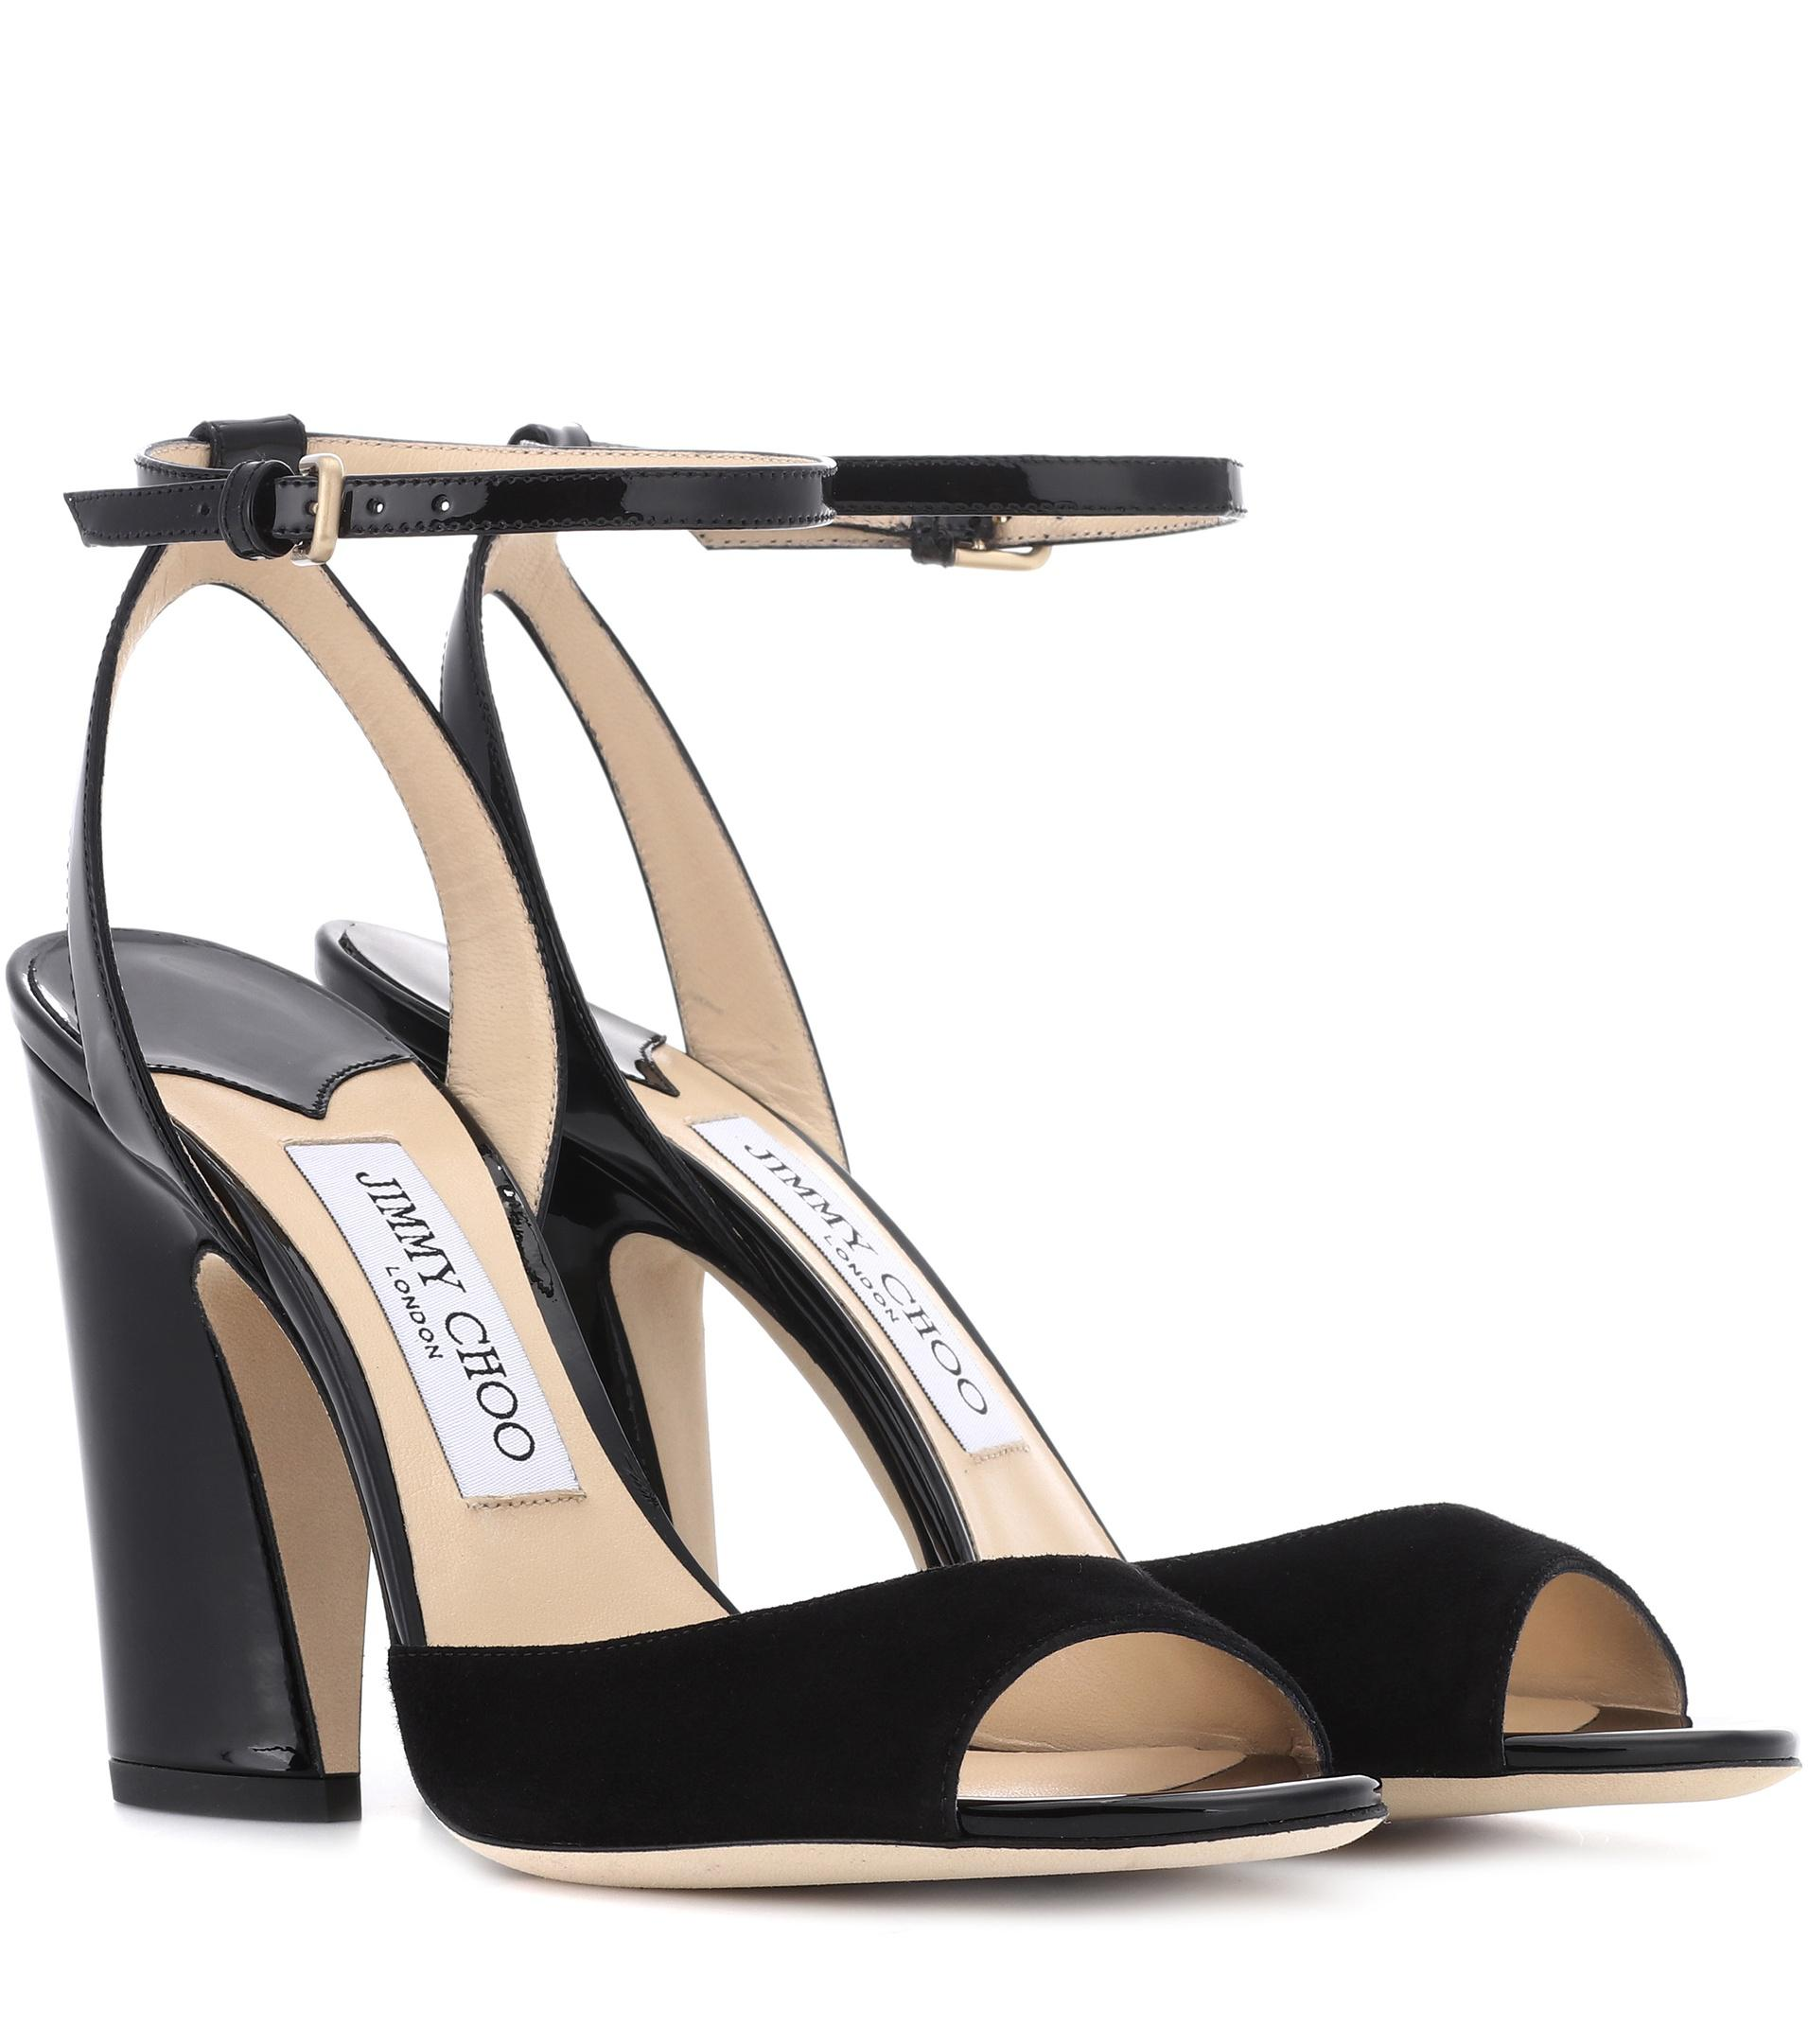 a77f042910a5 Jimmy Choo - Black Miranda 100 Suede Sandals - Lyst. View fullscreen